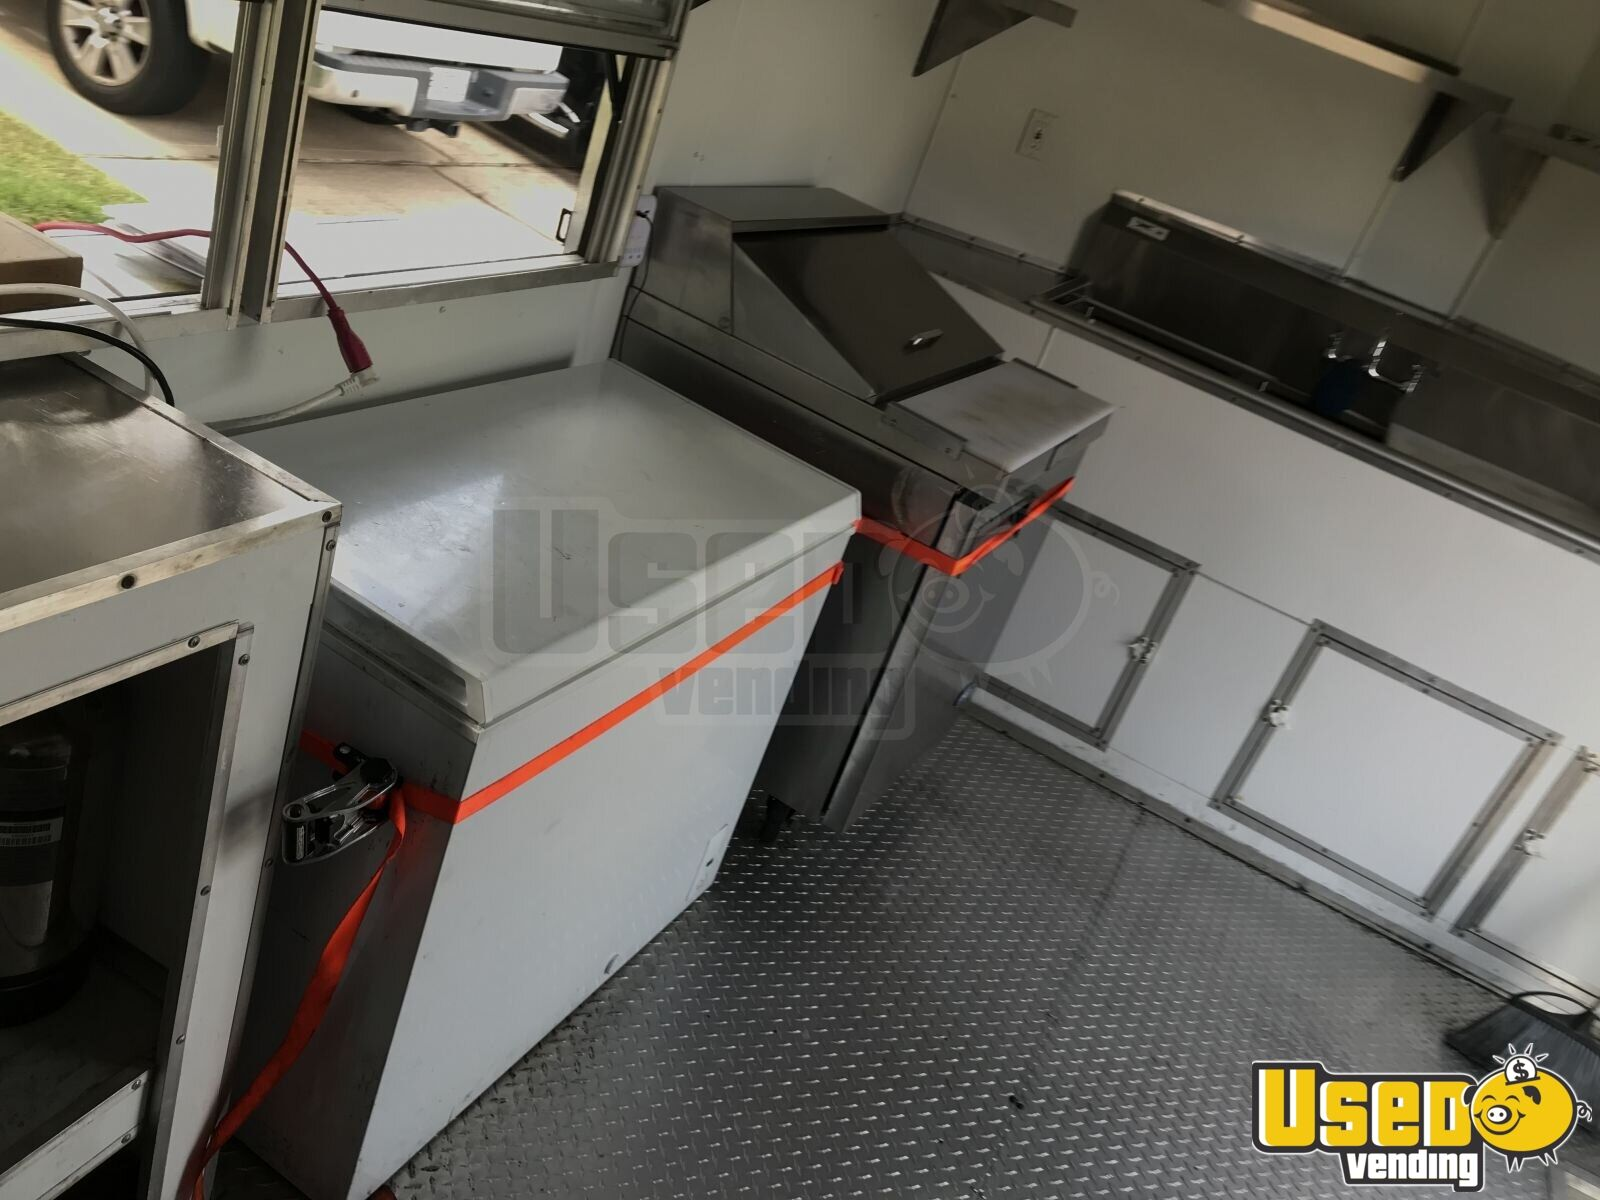 2017 Texas Trailer Country 8.5x20ta Covered Wagon Cargo Trailer All-purpose Food Trailer Prep Station Cooler Texas for Sale - 12